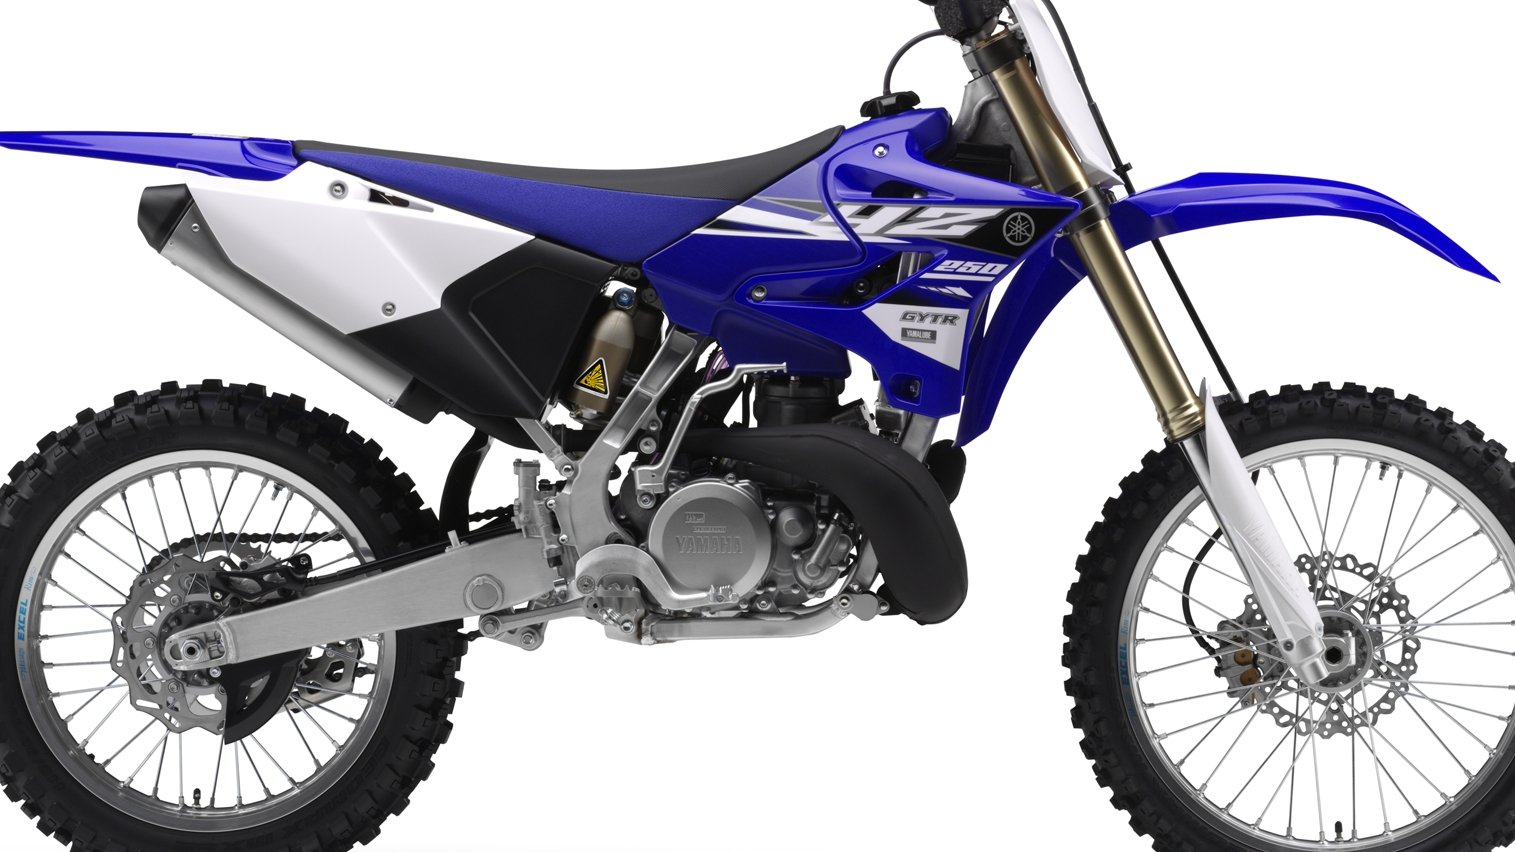 yamaha yz 250 lc bilder und technische daten. Black Bedroom Furniture Sets. Home Design Ideas